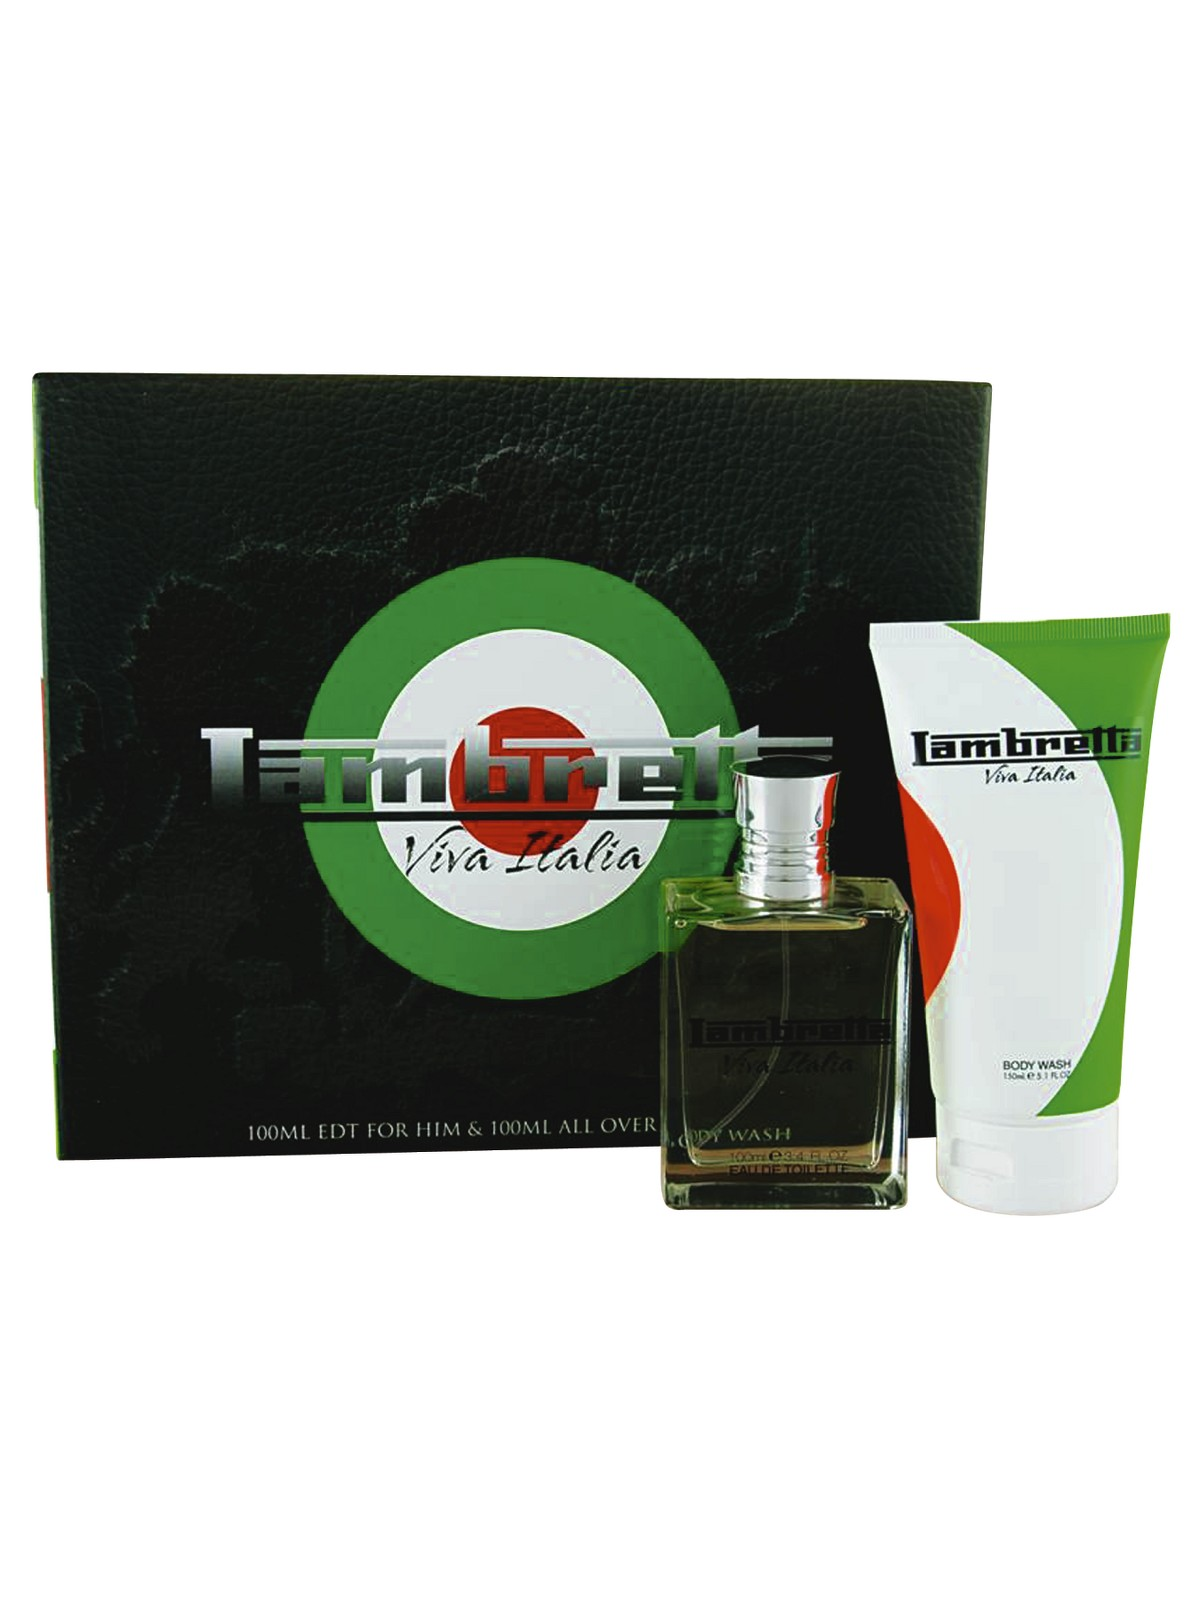 Mens Lambretta 'Viva Italia' 100ml Eau de Toilette & 150ml Shower Gel Gift Set Enlarged Preview